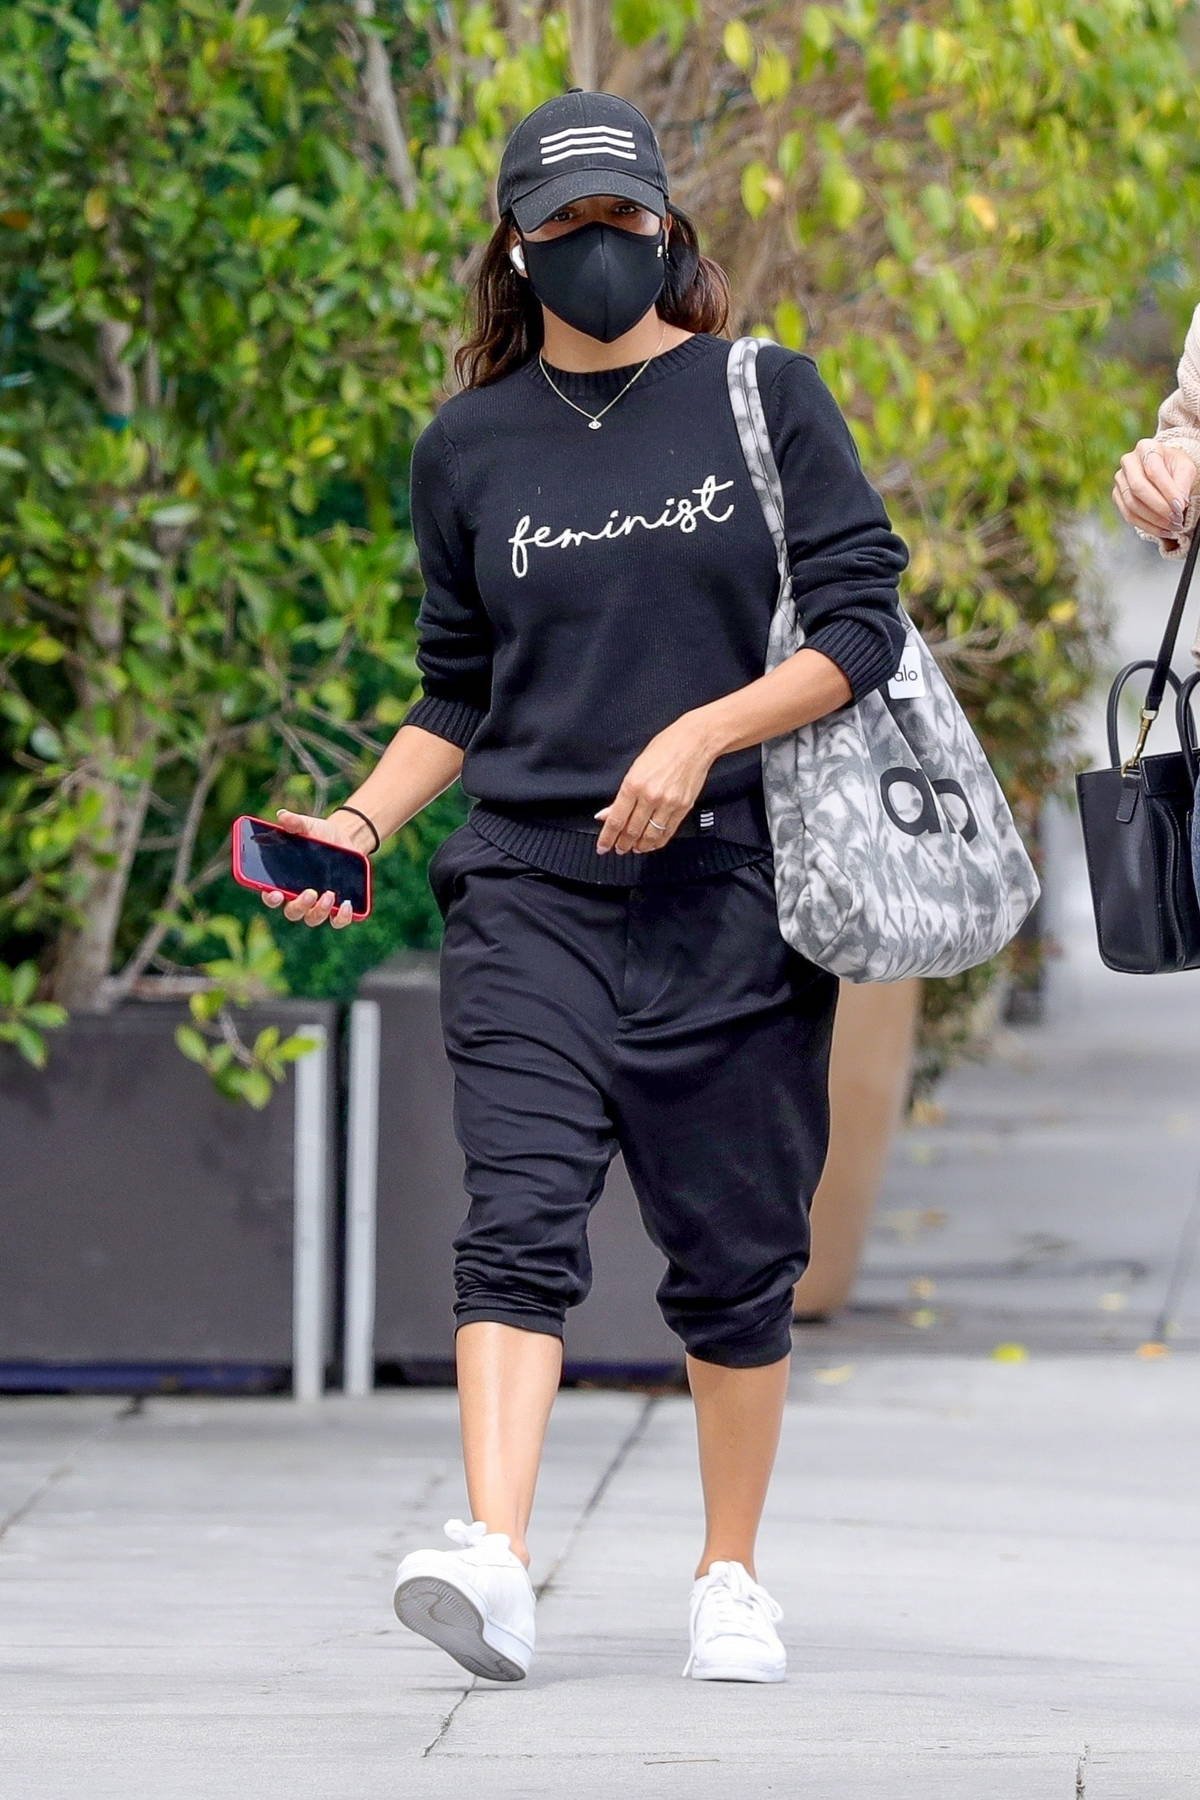 Eva Longoria wears a 'Feminist' sweater on International Women's Day while shopping at Alo Yoga store in Beverly Hills, California